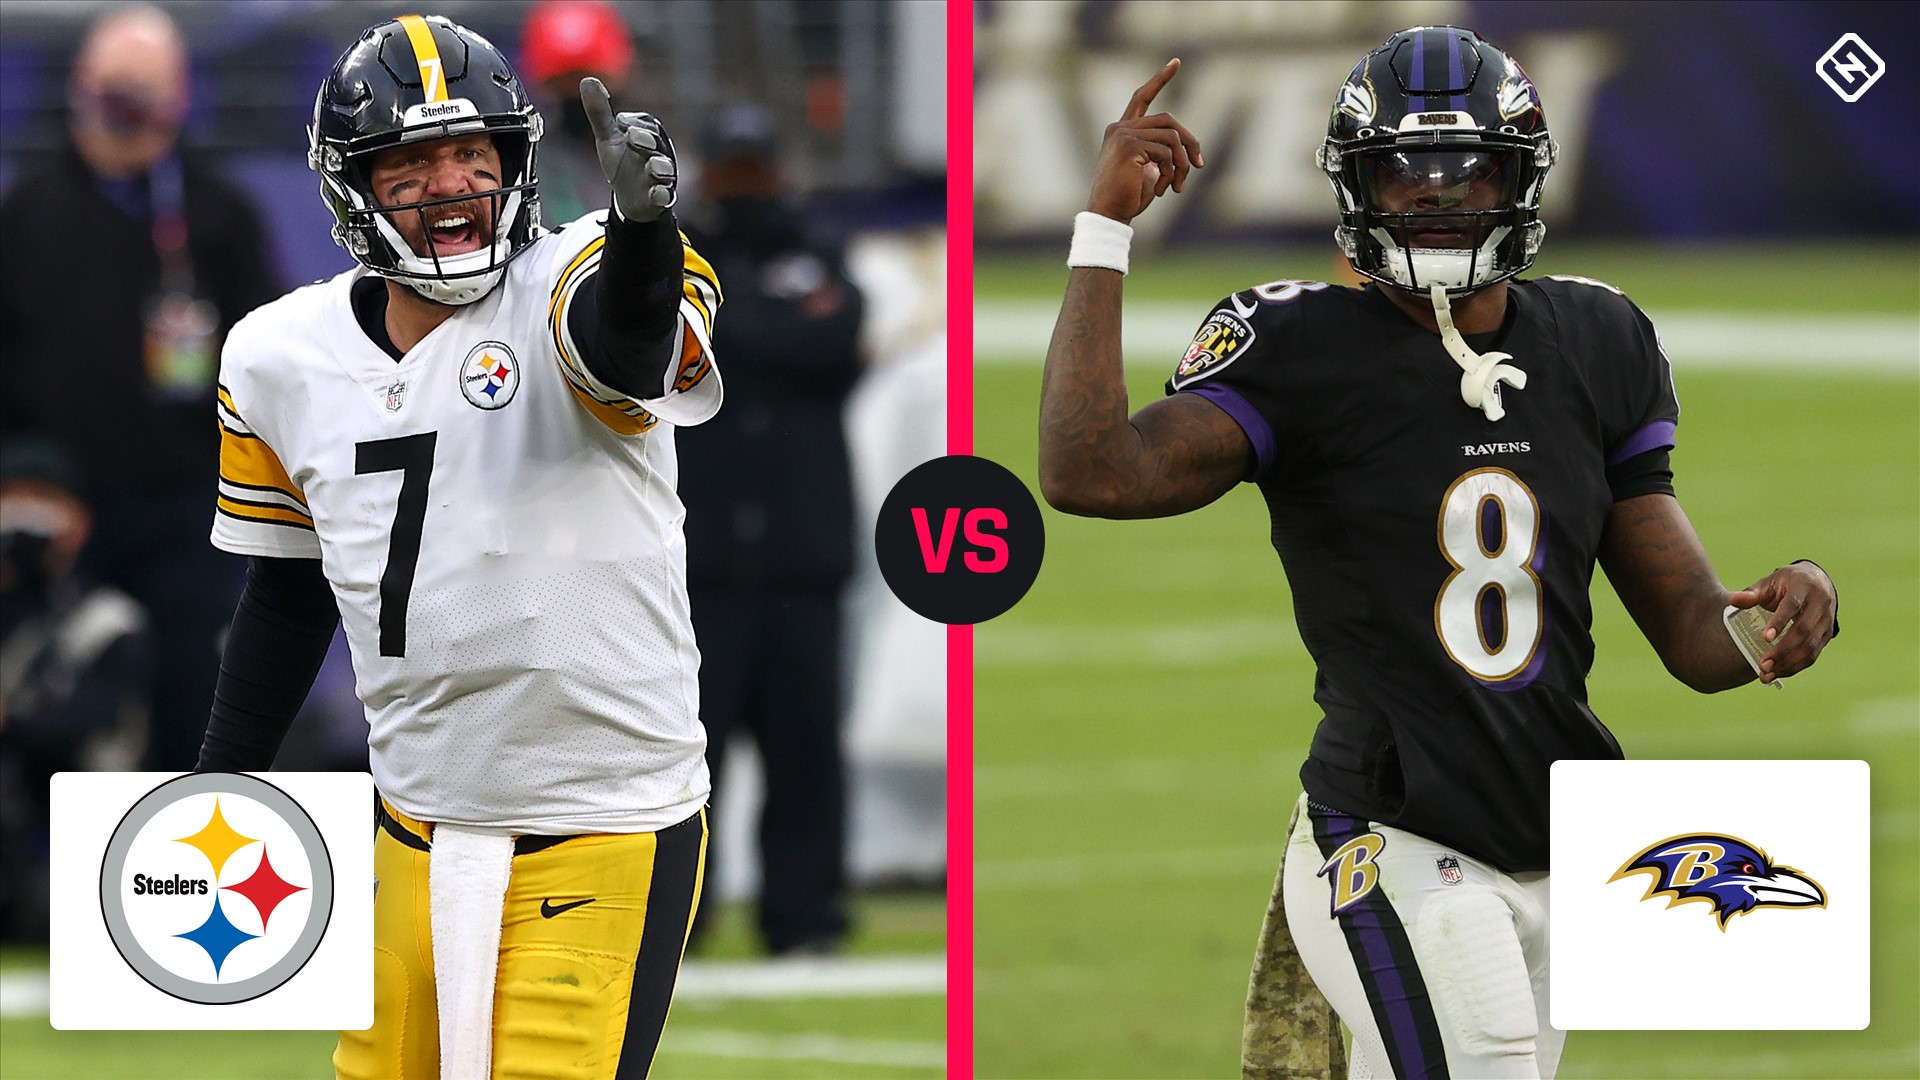 NFL picks, predictions for Thanksgiving: Steelers stay unbeaten vs. Ravens; Cowboys capture first place